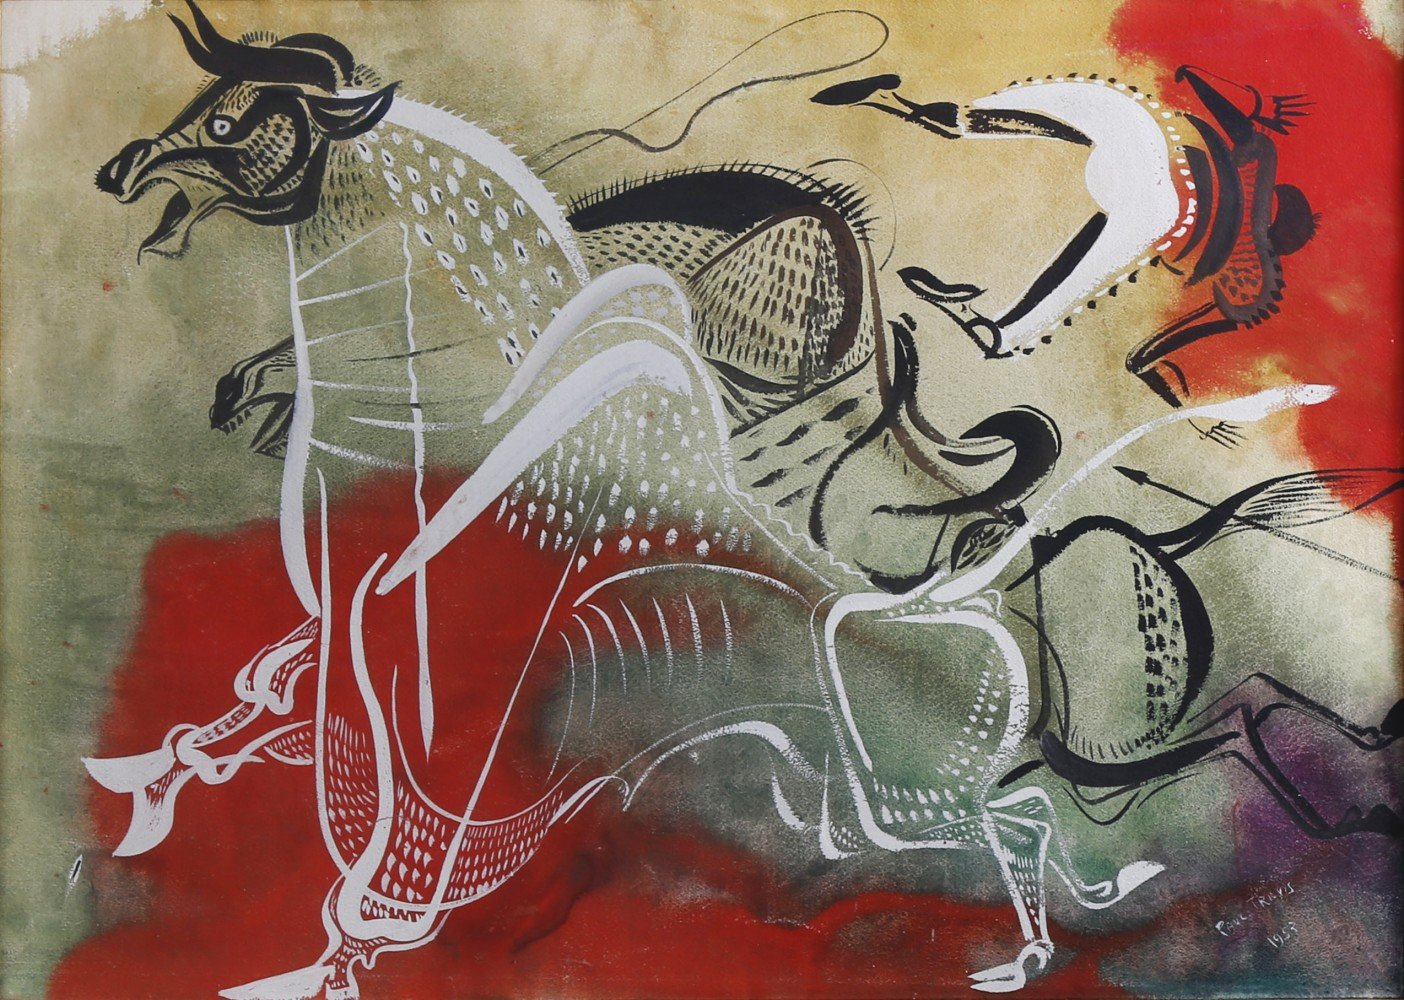 Animal and Figurative Watercolor and Gouache on Paper Painting: